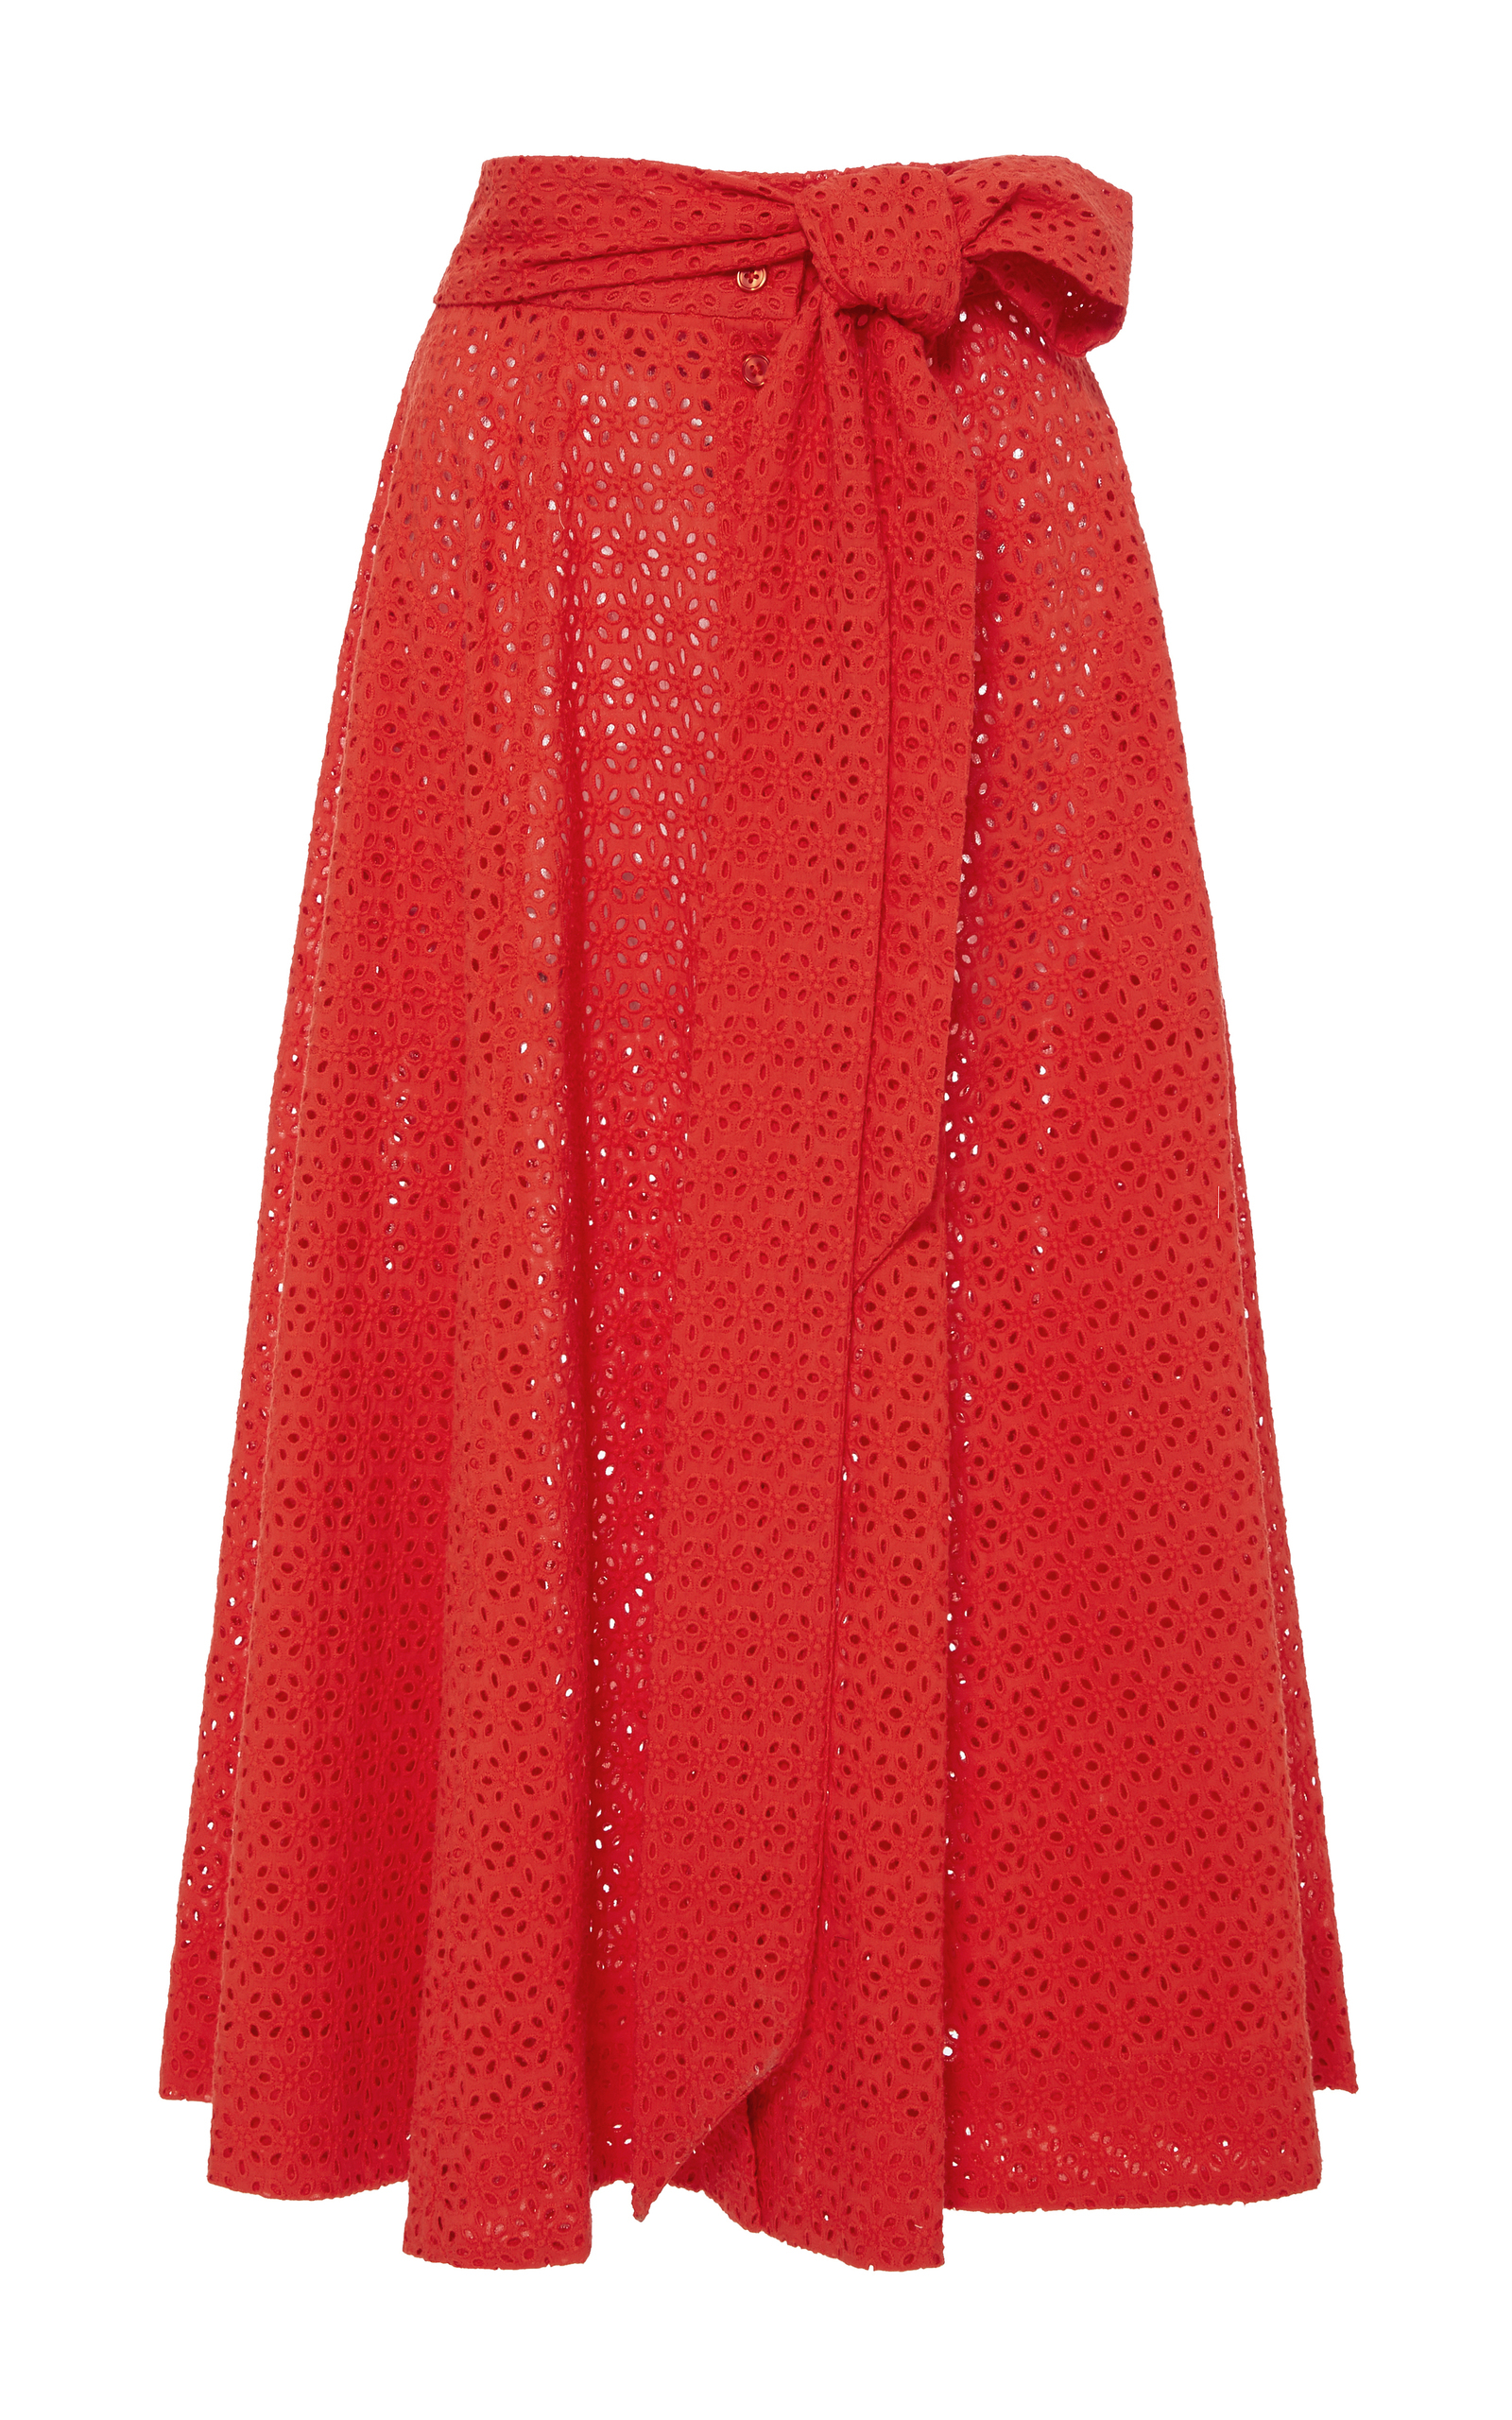 large_lisa-marie-fernandez-red-high-waist-eyelet-beach-skirt.jpg